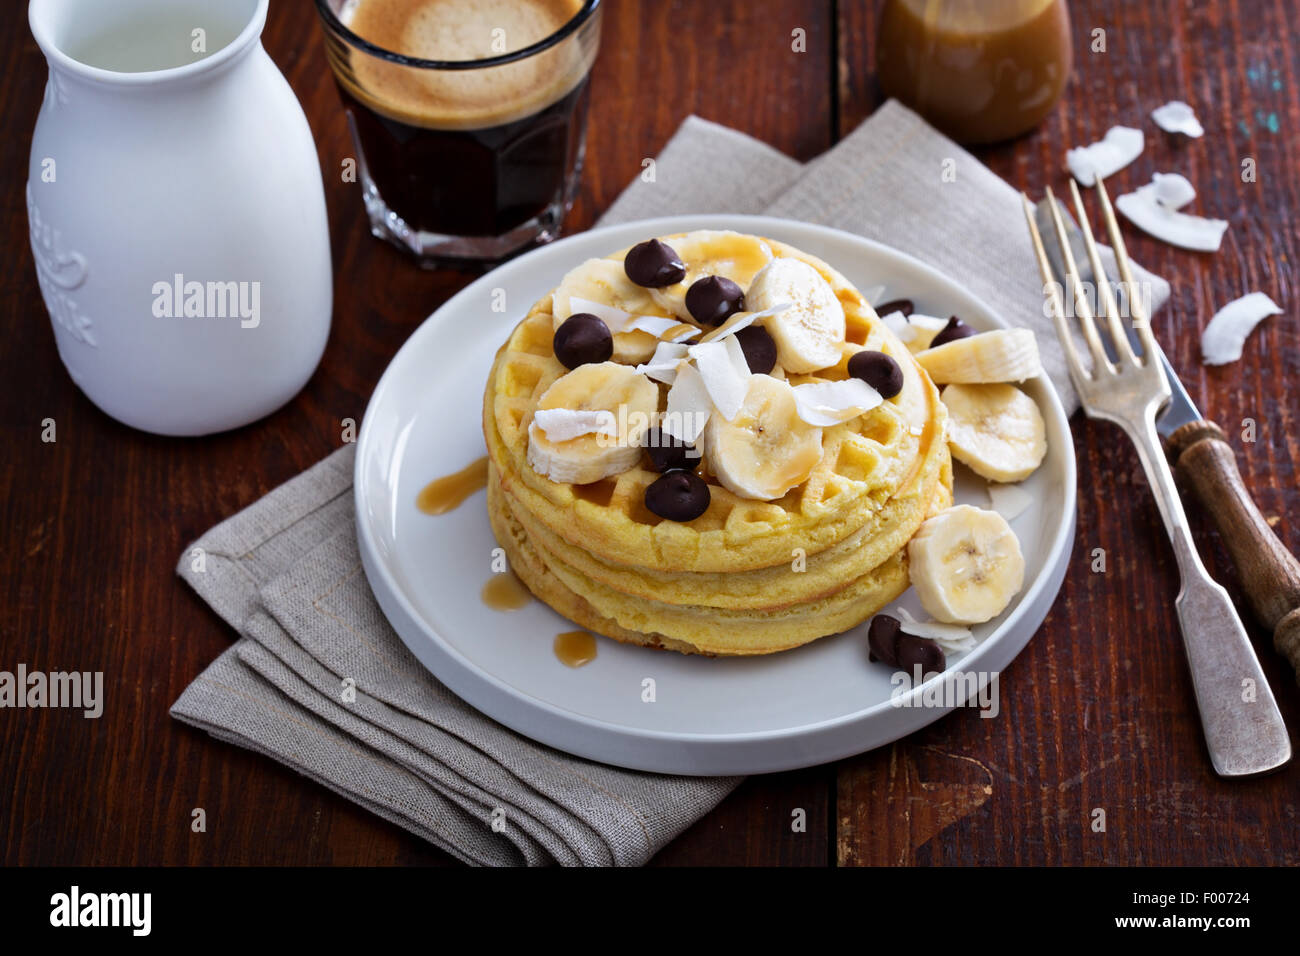 Waffles with banana slices, caramel and chocolate - Stock Image